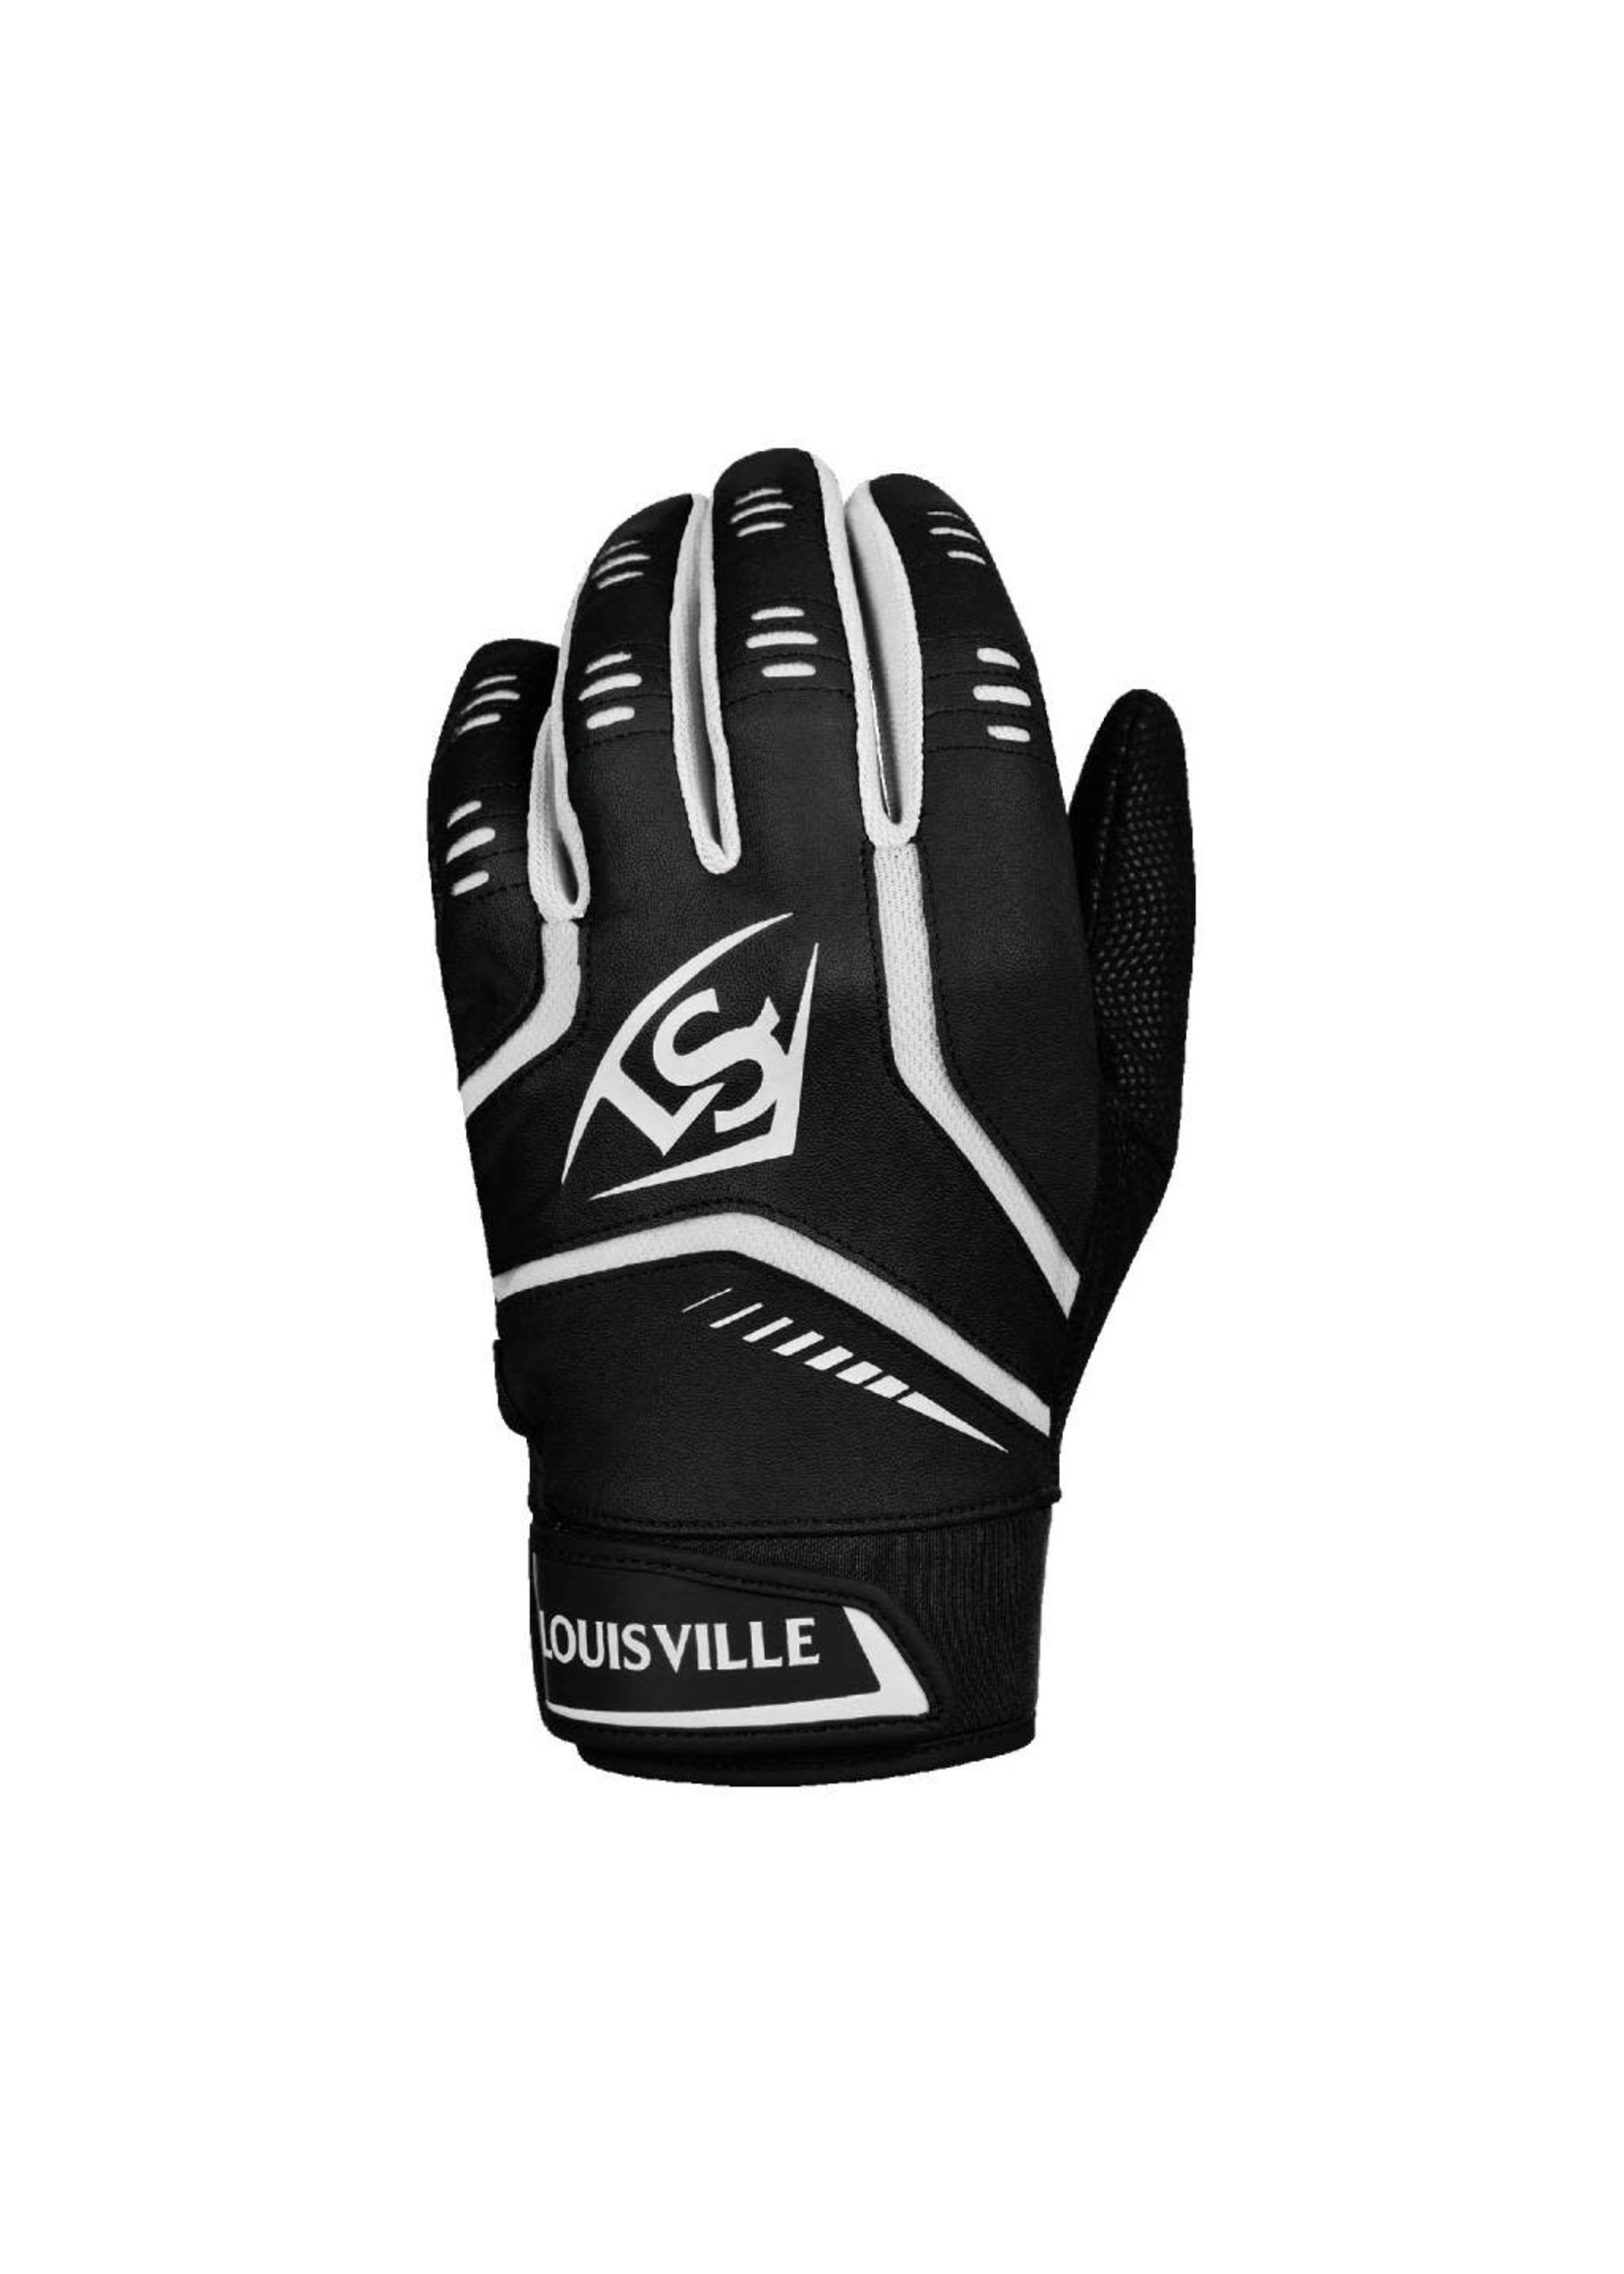 Louisville (Canada) LOUISVILLE OMAHA BATTING GLOVES NOIR ADULT